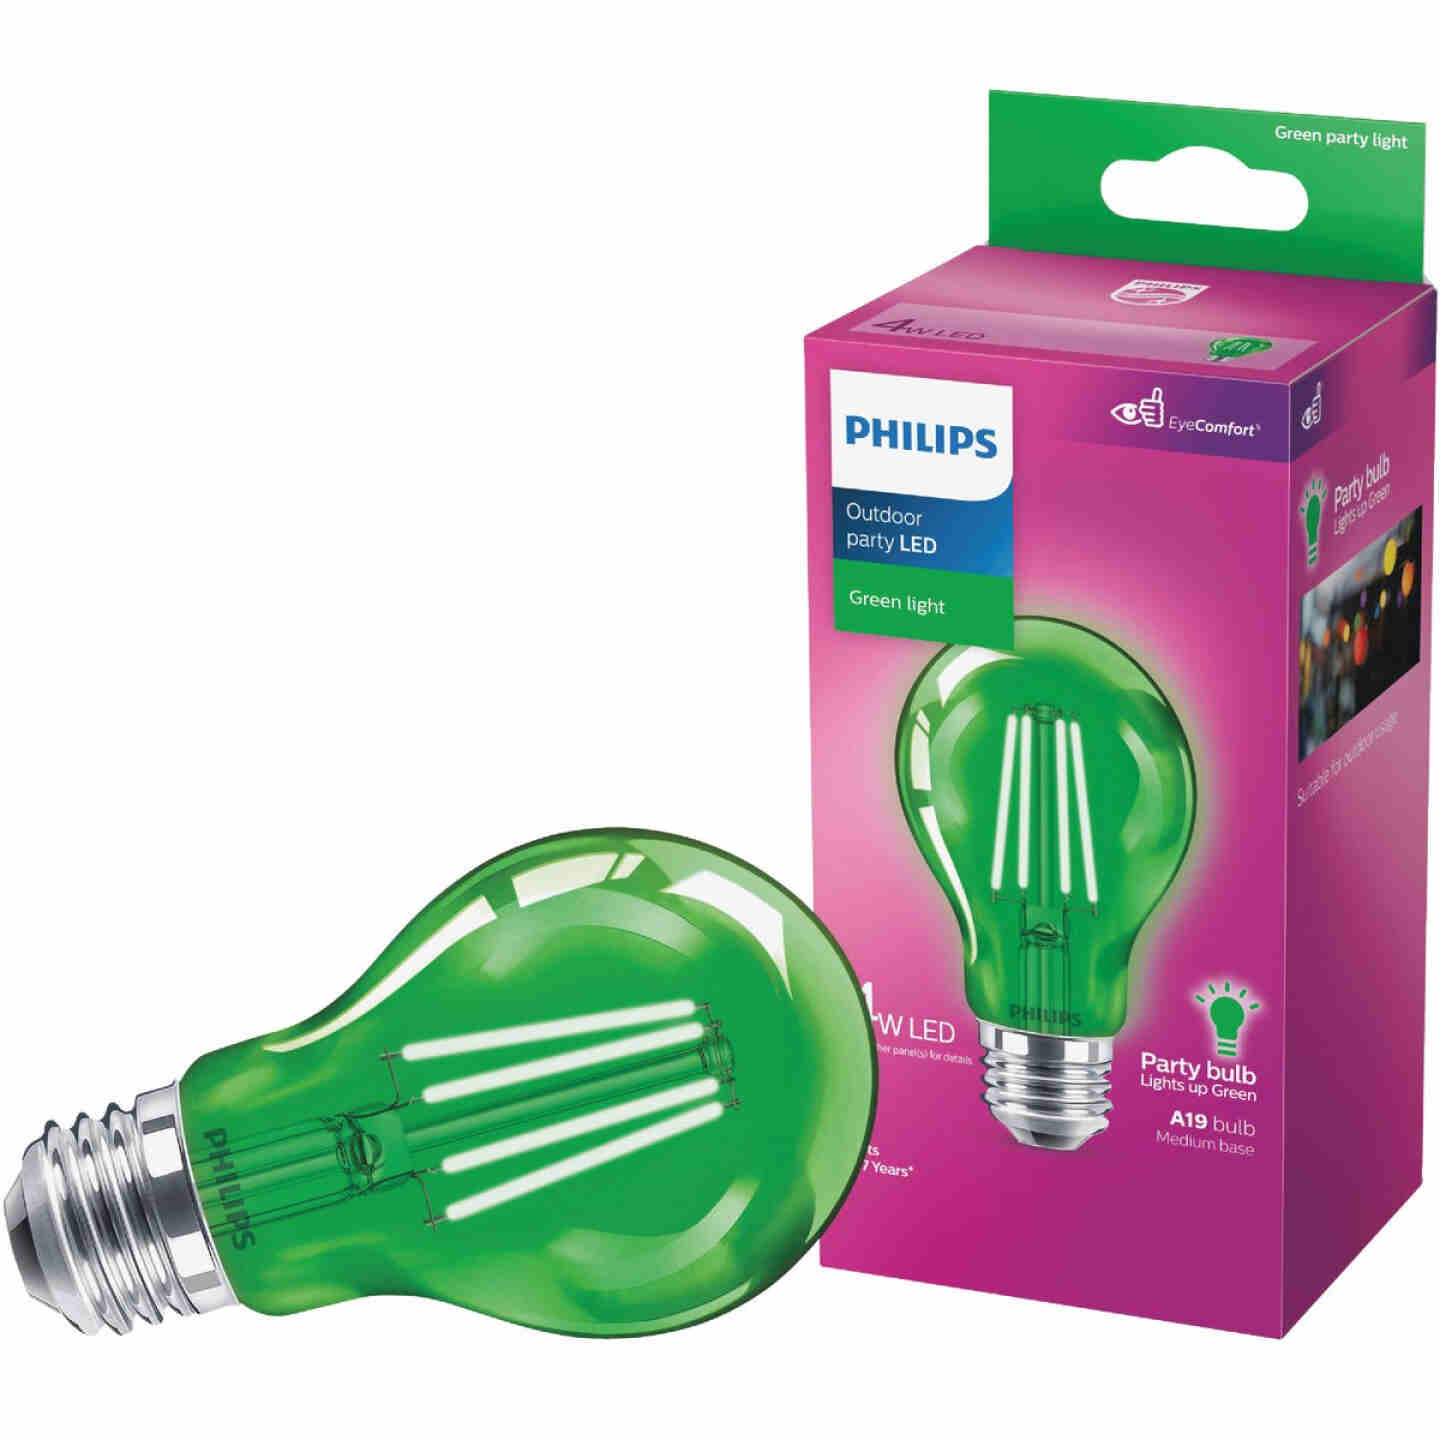 Philips Green A19 Medium 4W Indoor/Outdoor LED Decorative Party Light Bulb Image 1